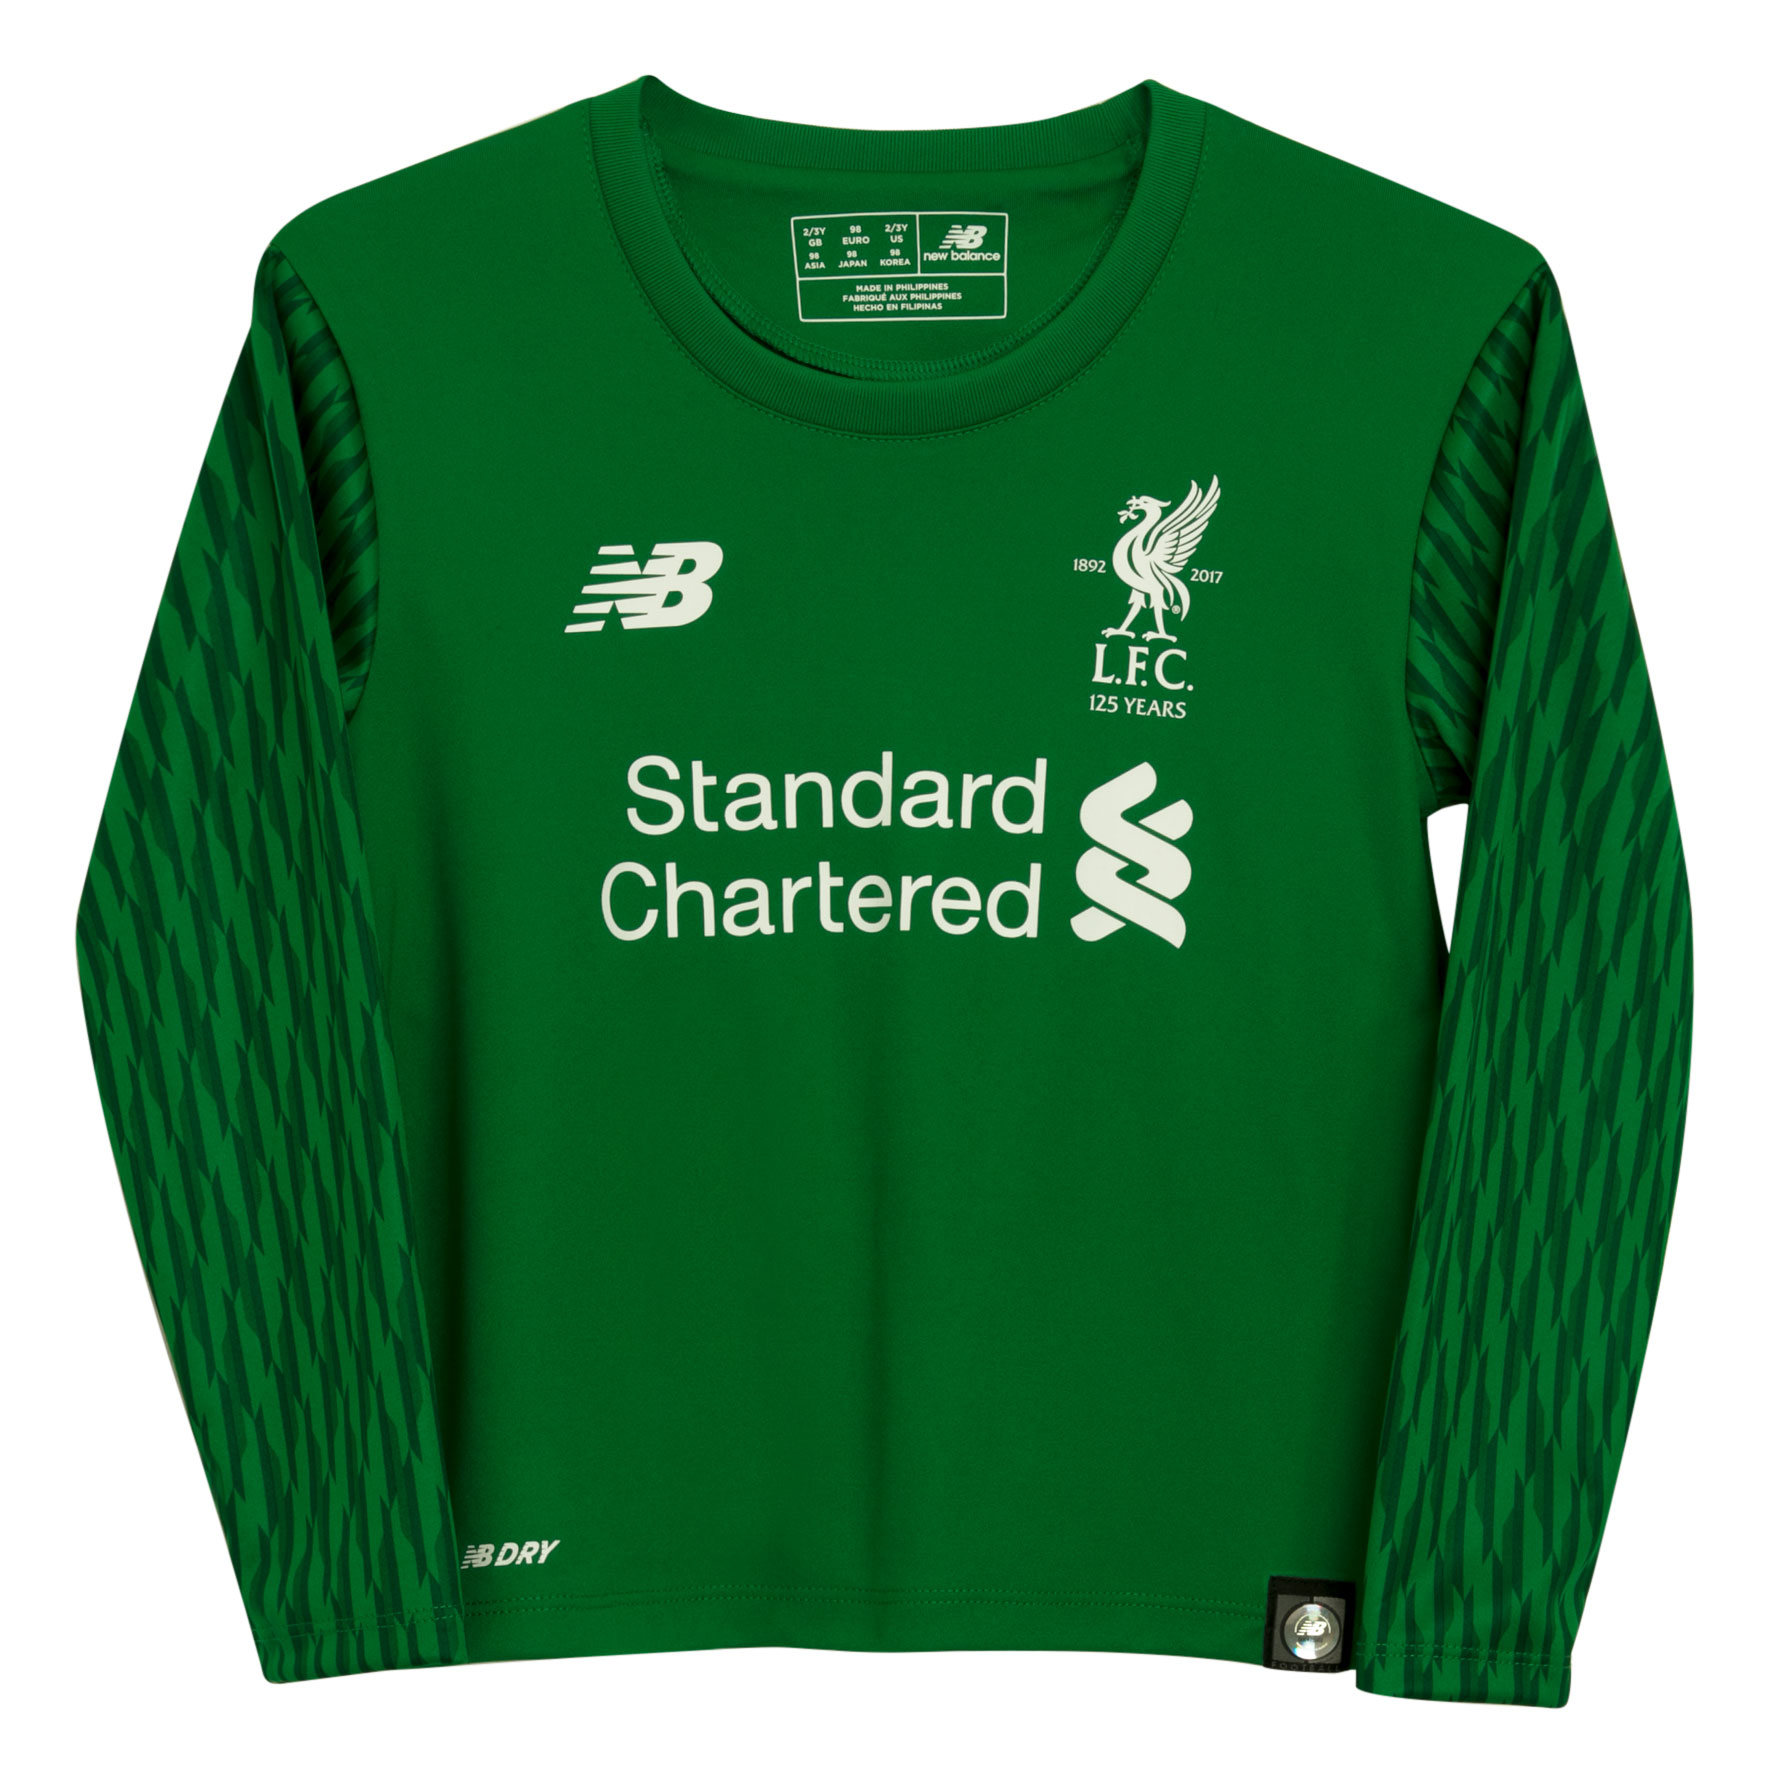 HD Liverpool goalkeeper kit.